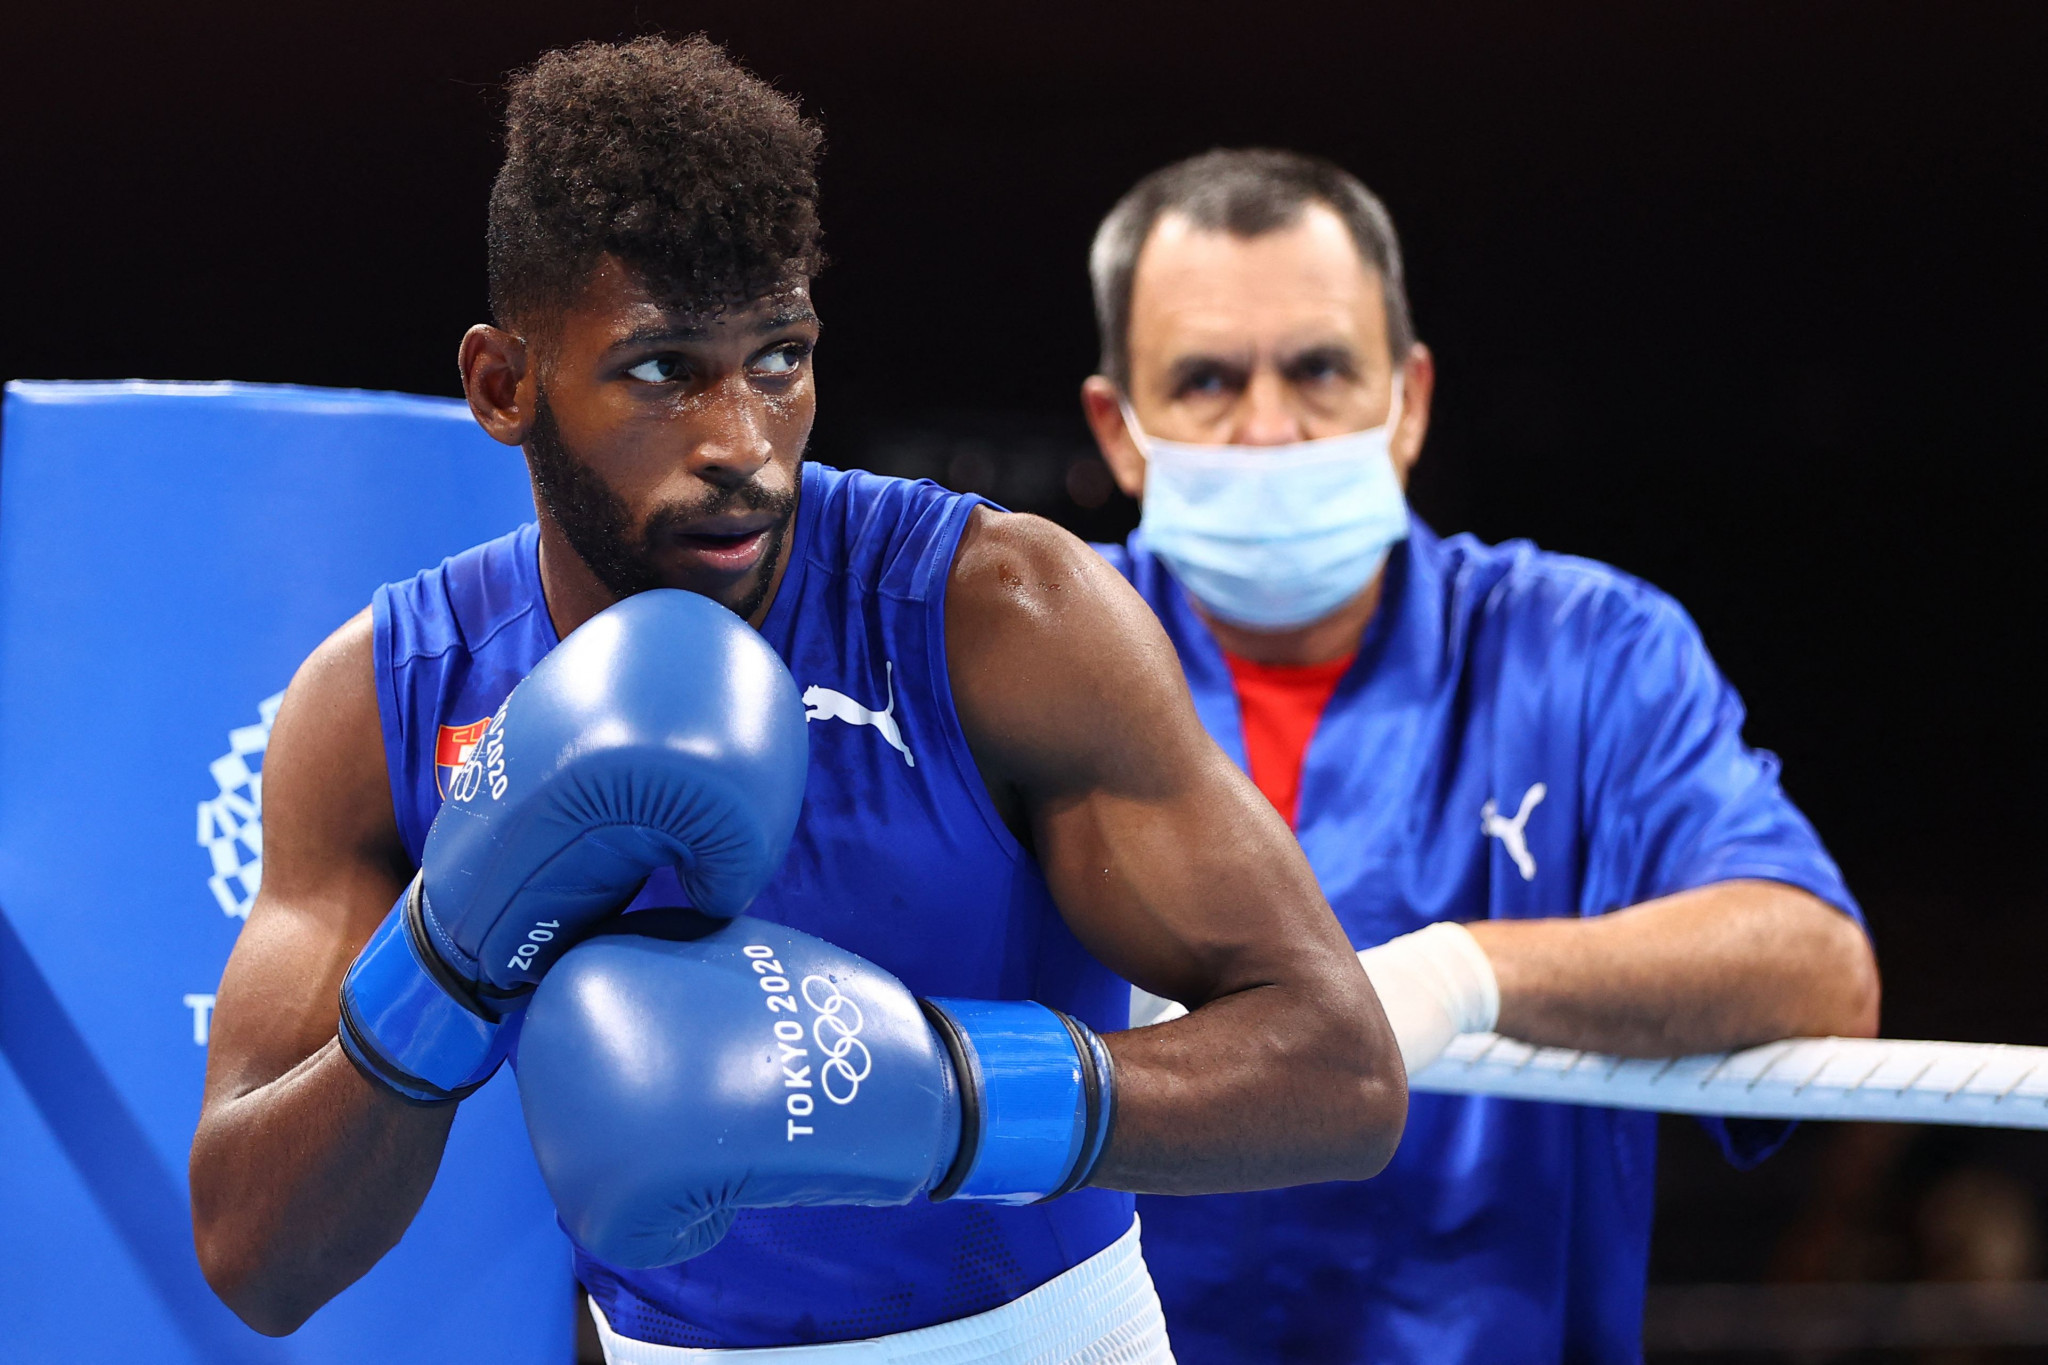 Cruz makes it four Cuban golds as boxing finals conclude at Tokyo 2020